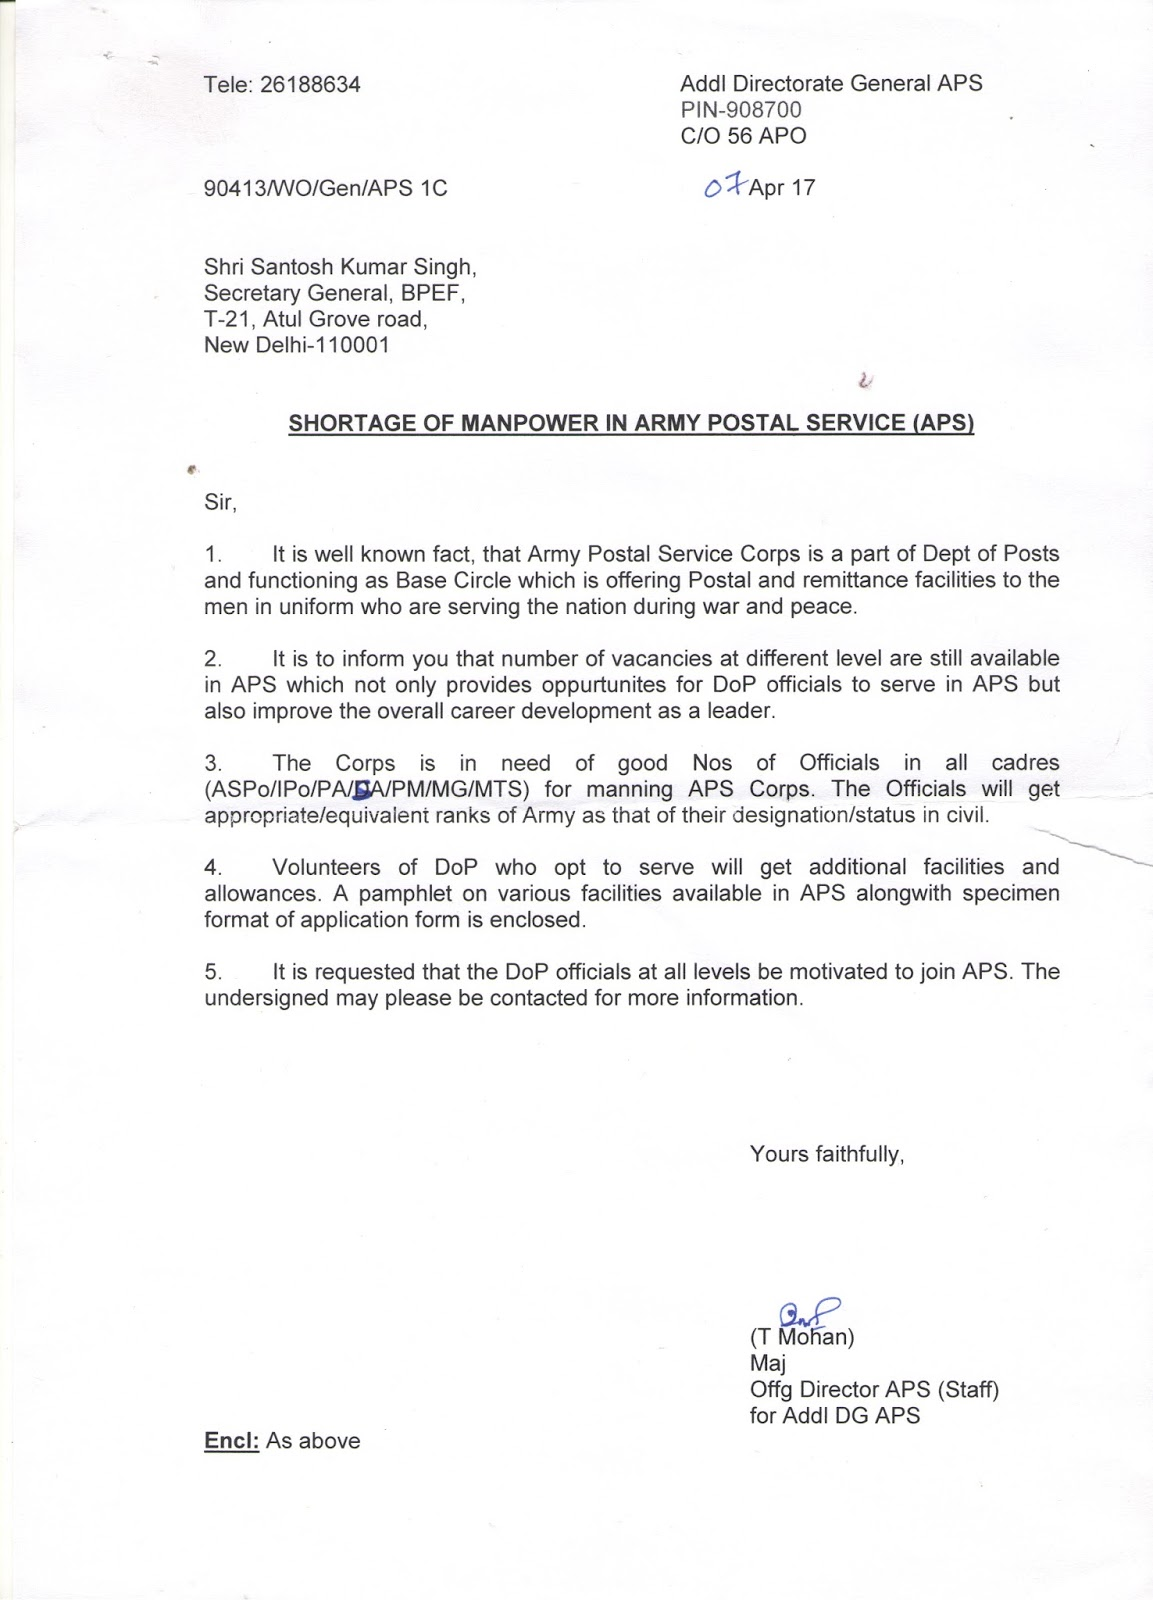 bharatiya postal employees federation appeal from aps head quarter to join service in aps